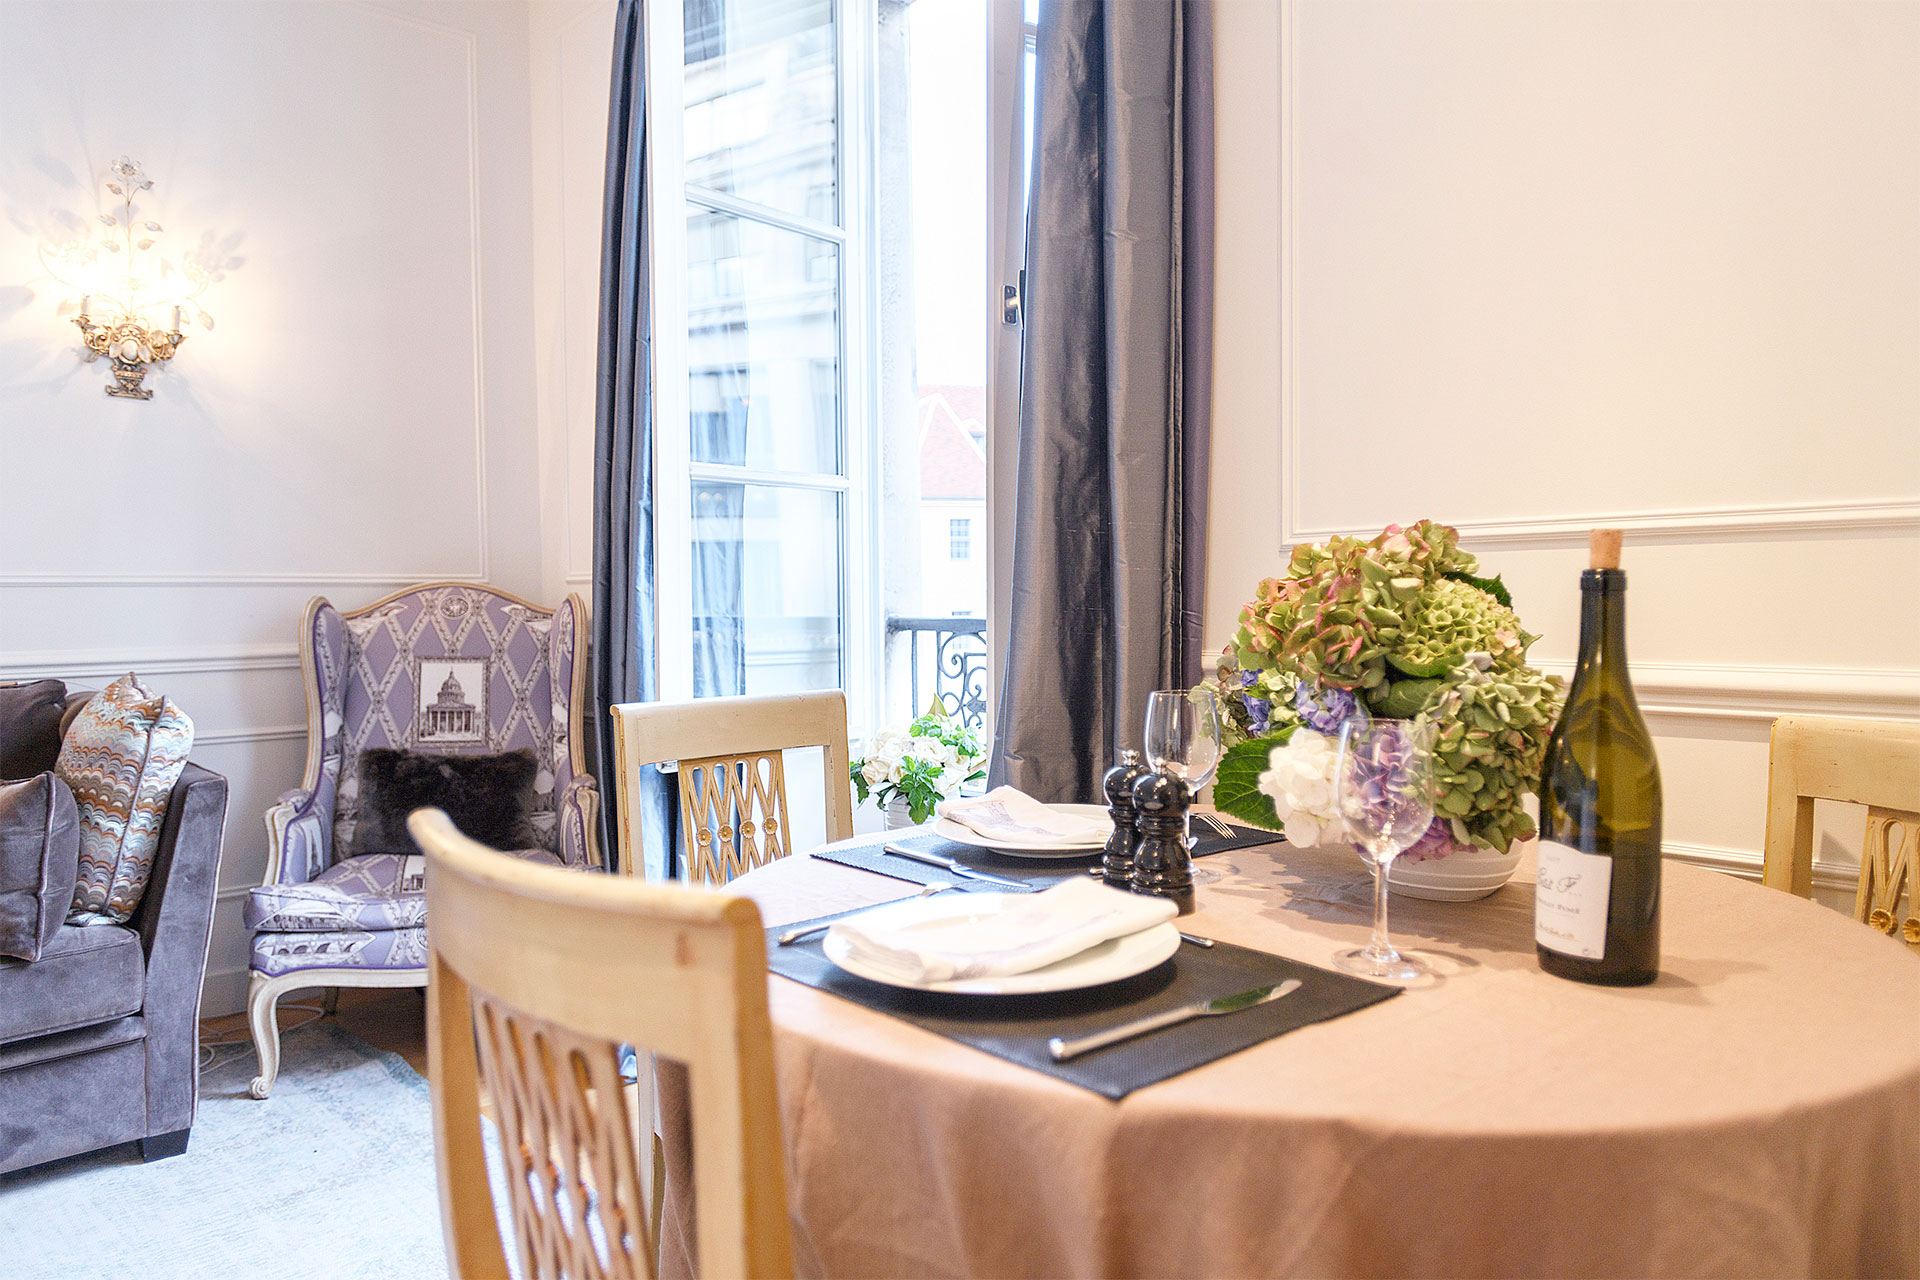 Dine in style at the Sangiovese Paris Perfect rental